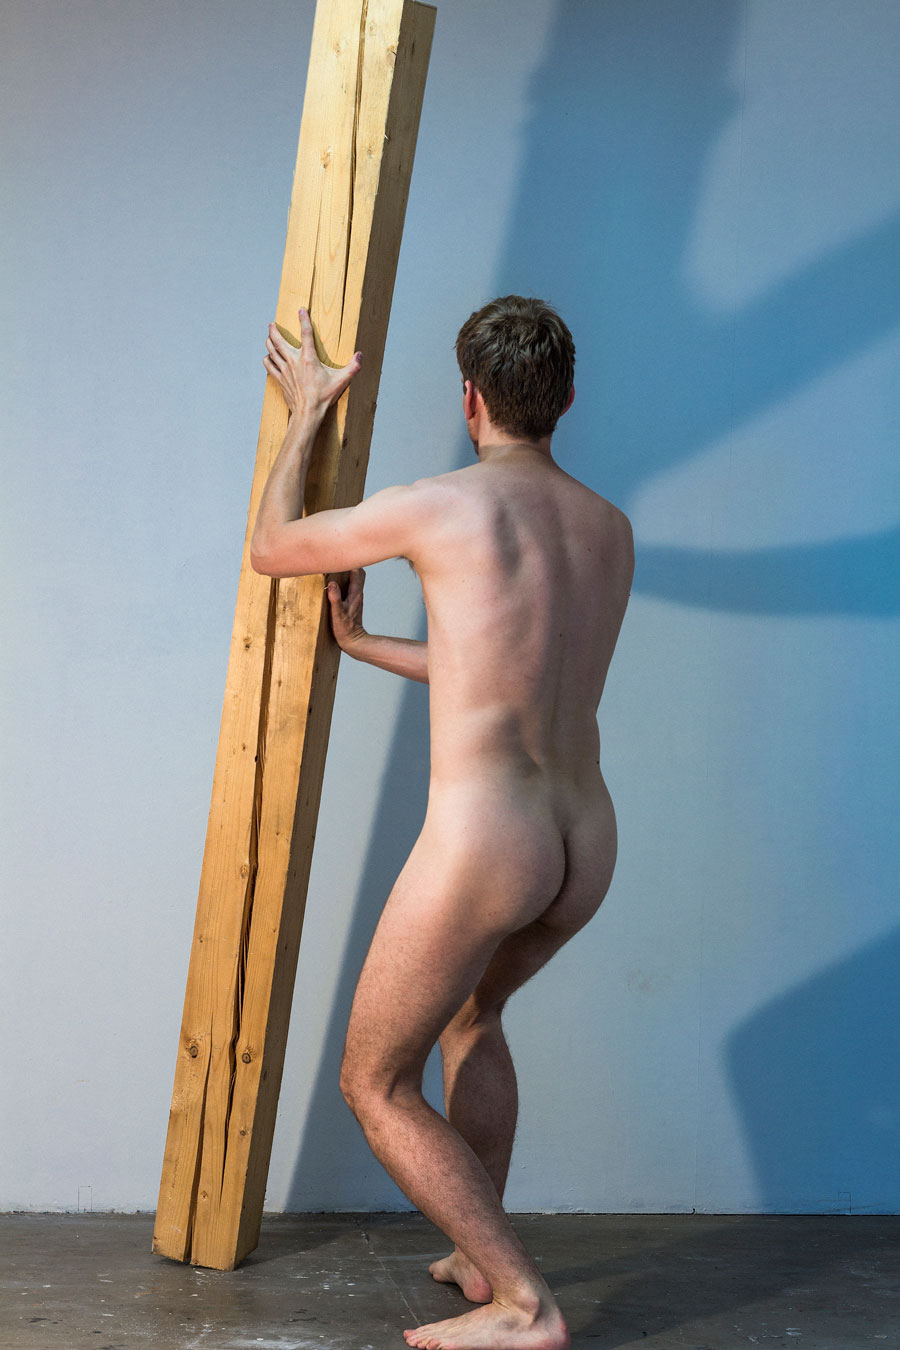 Peter Puklus, Erection, 2016 © Peter Puklus